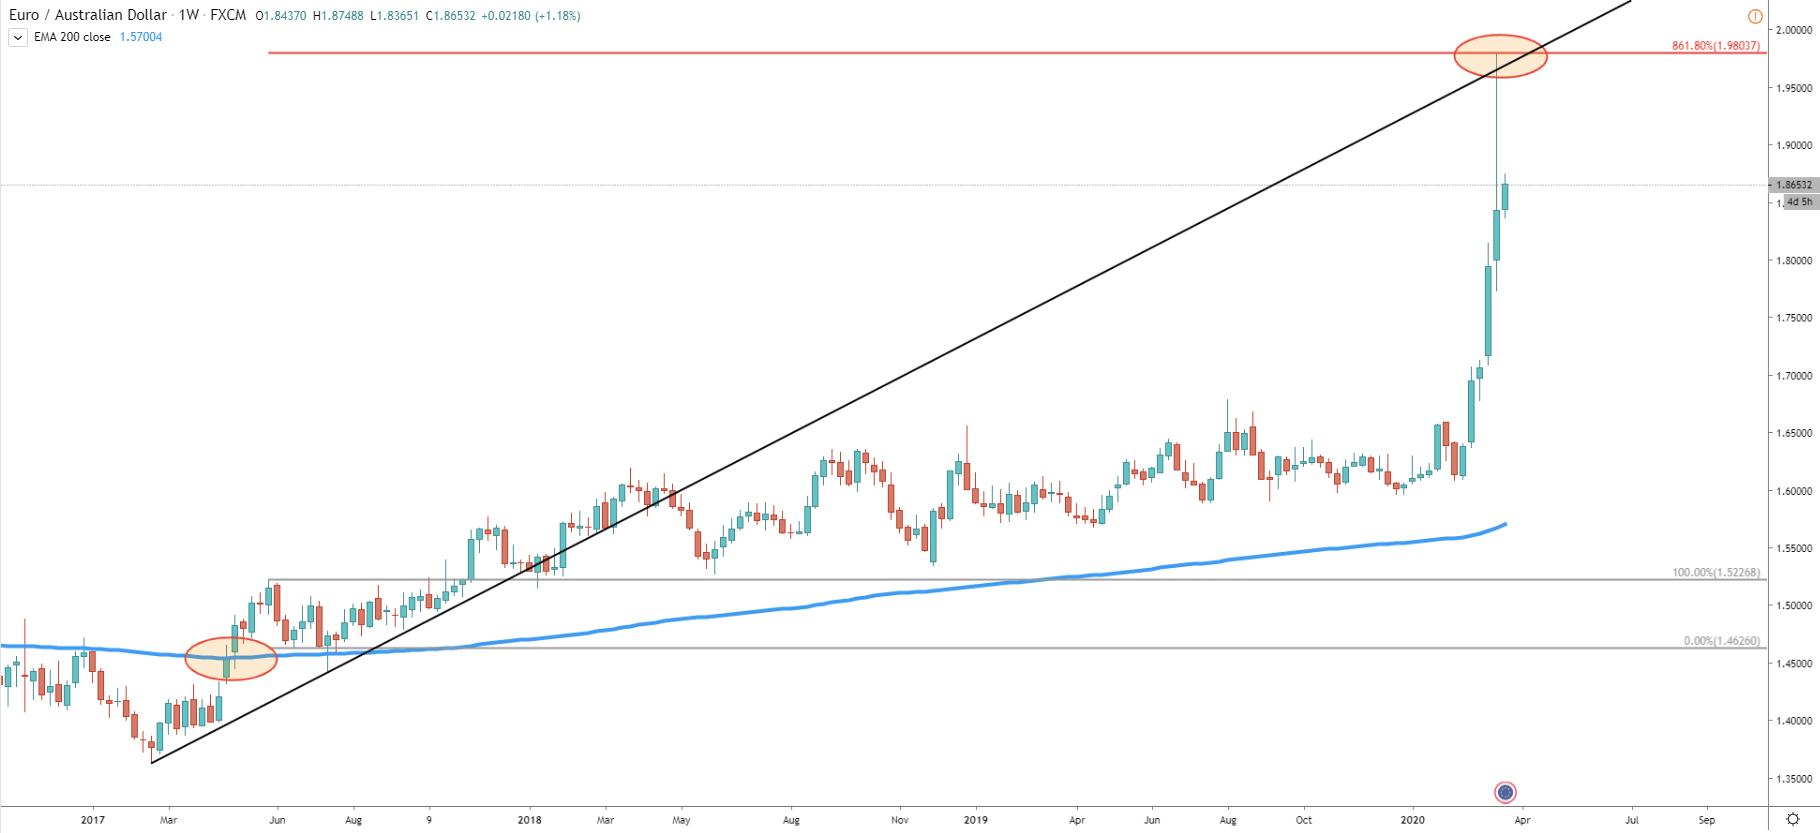 EUR/AUD Weekly Technical Analysis 23 Mar 2020